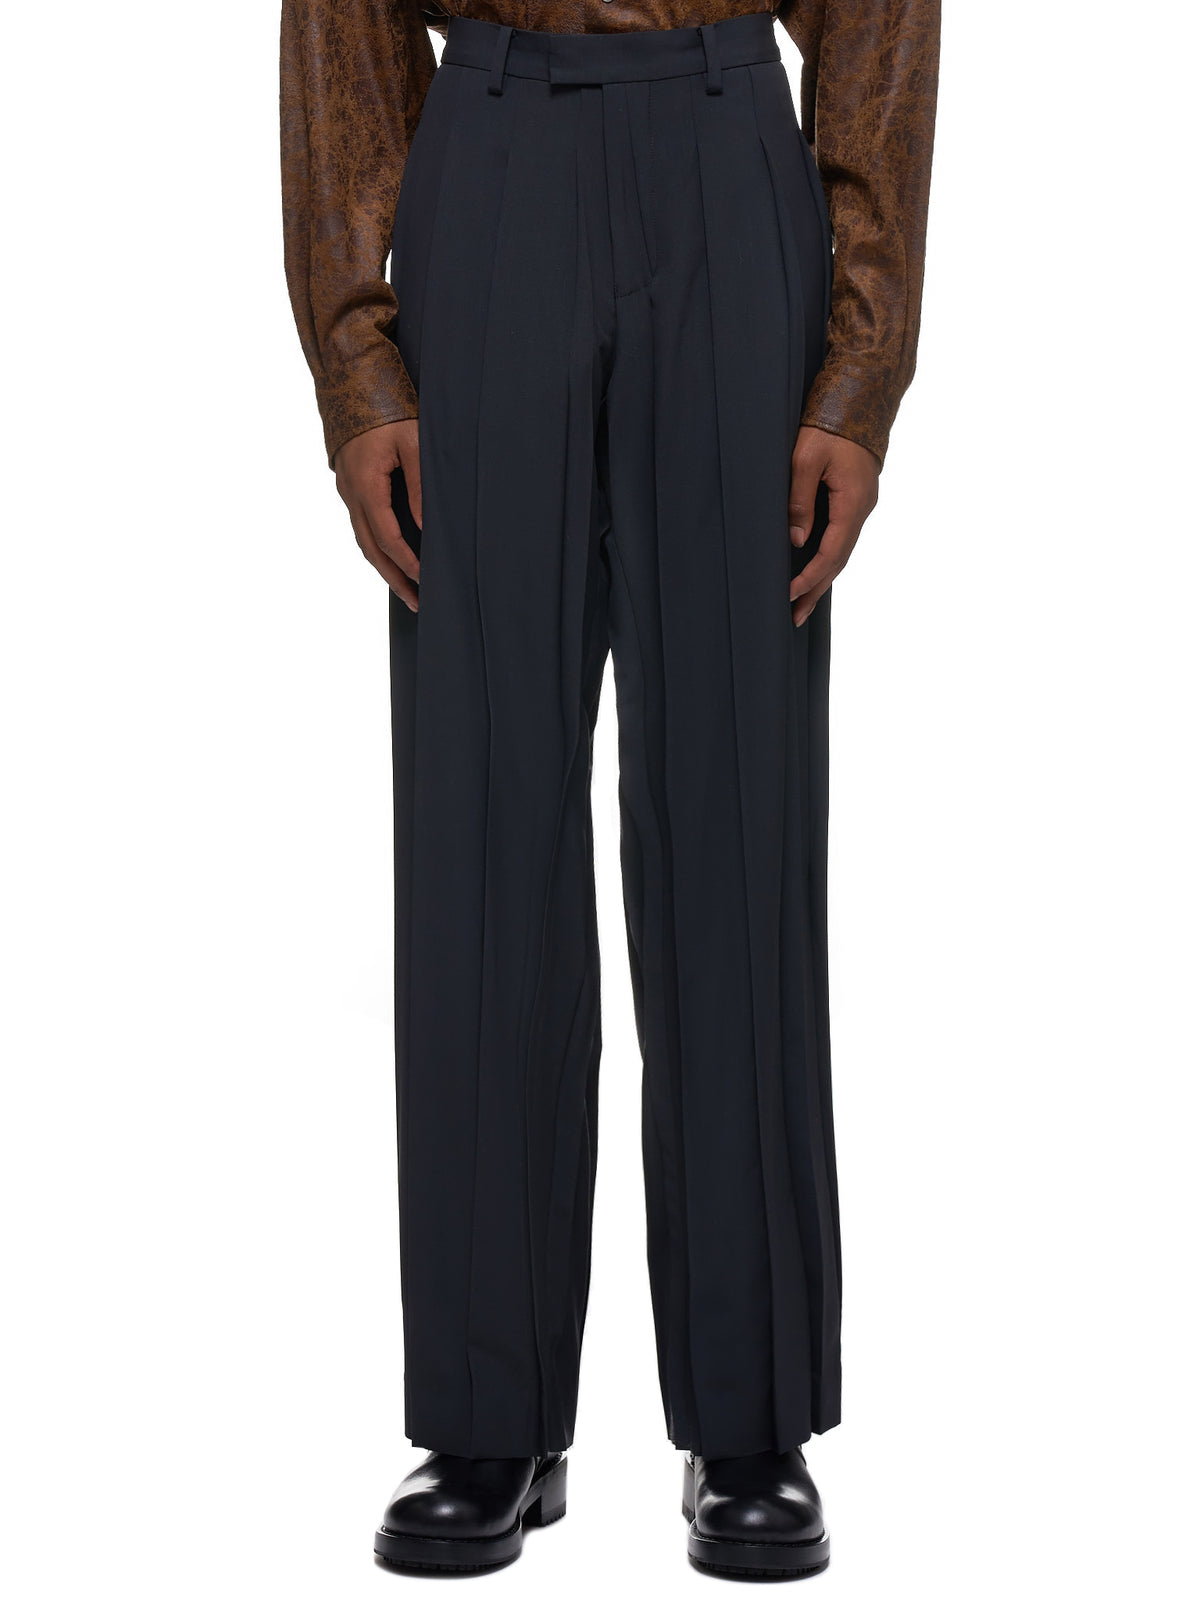 Pleated Wool Trousers (UCY4502-5-BLACK)